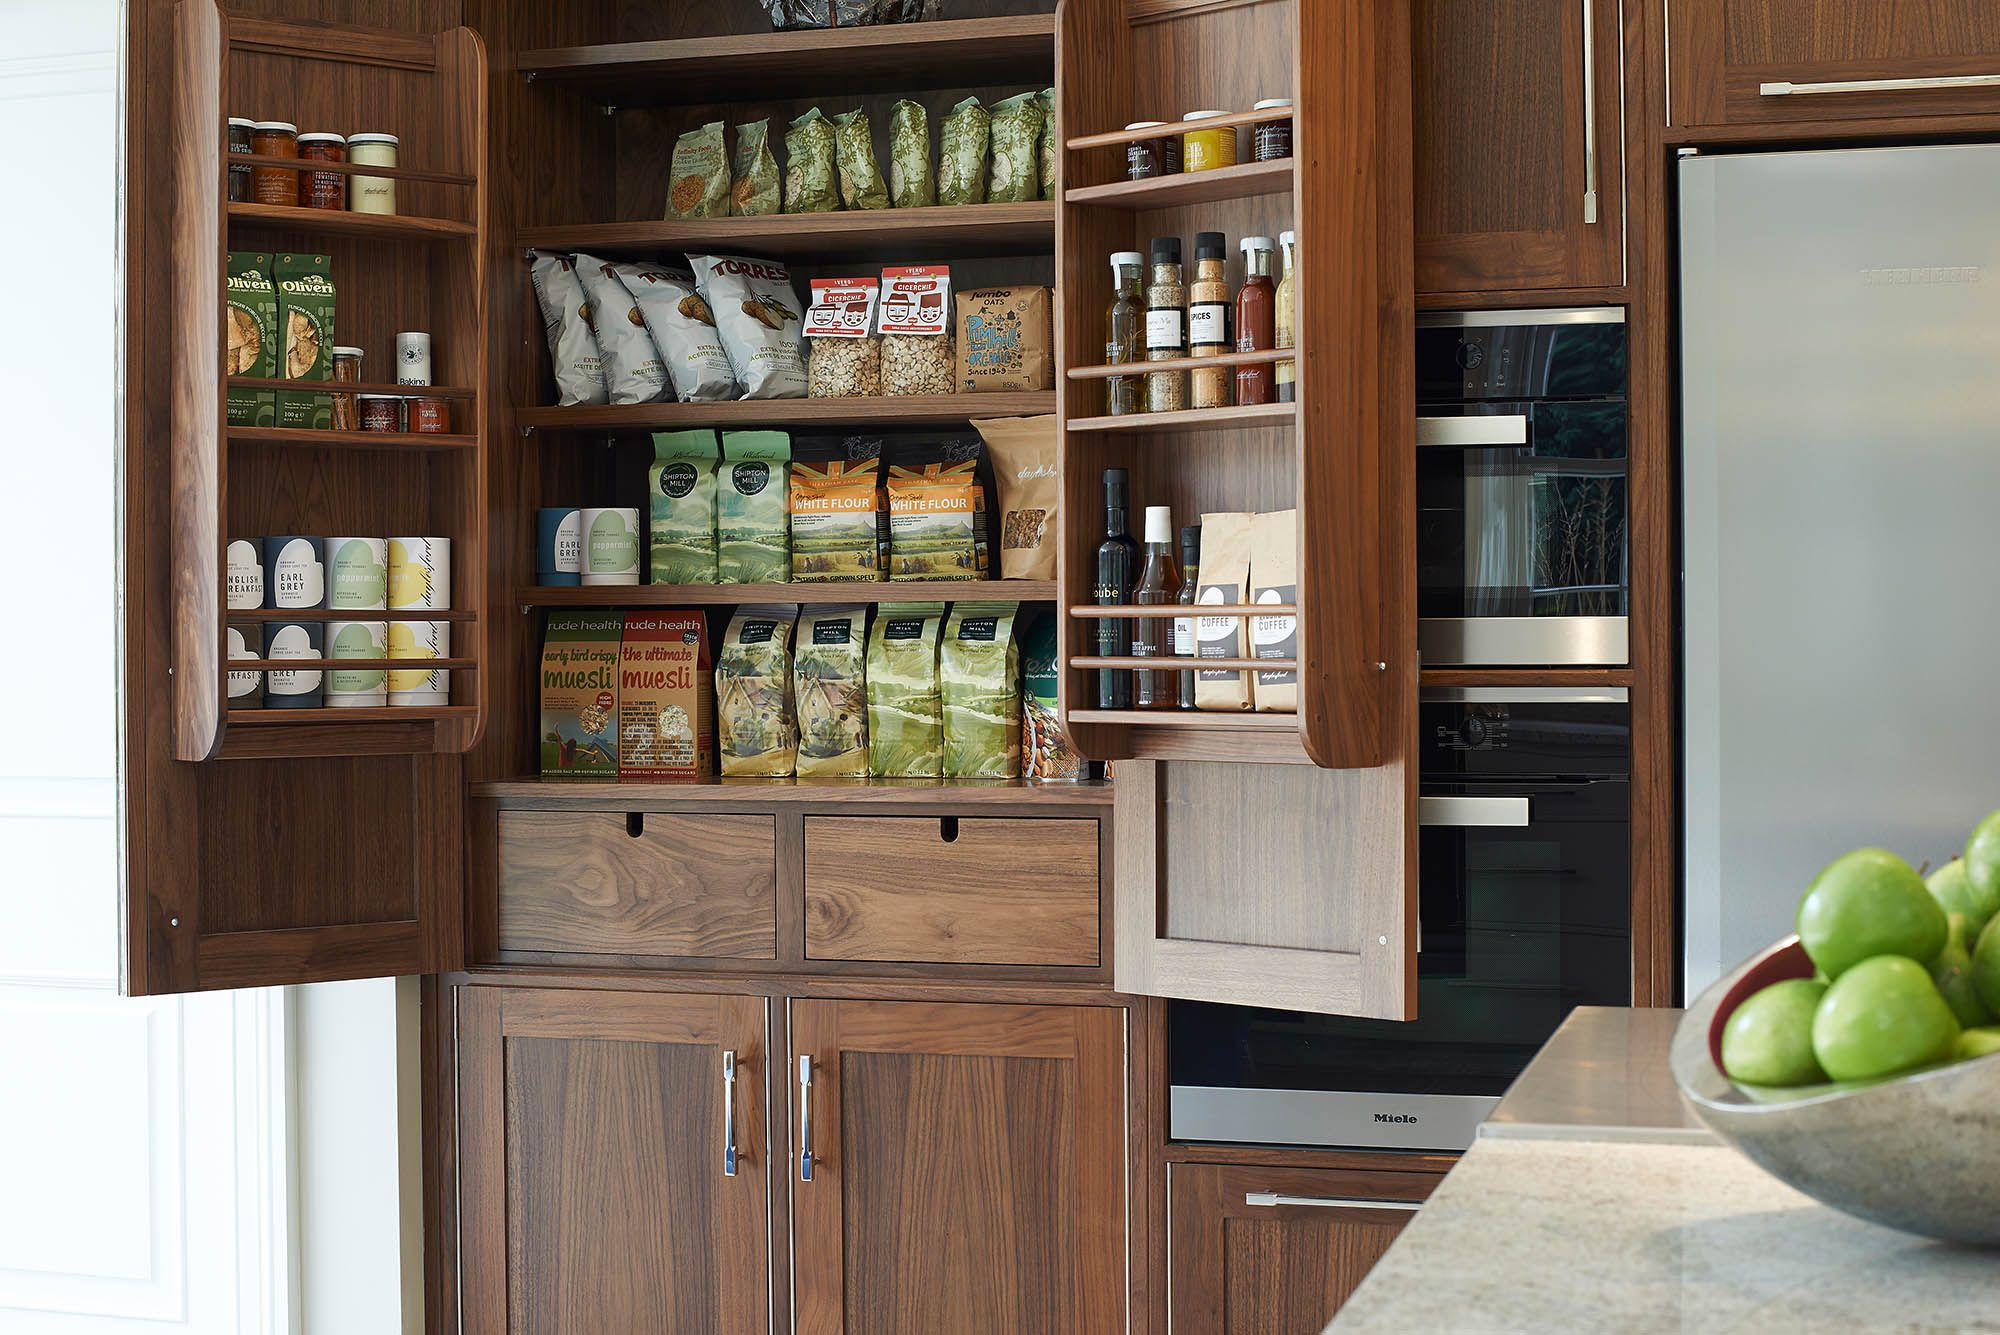 Firm Hoban Design Project Coombe Kitchen Kitchen, New